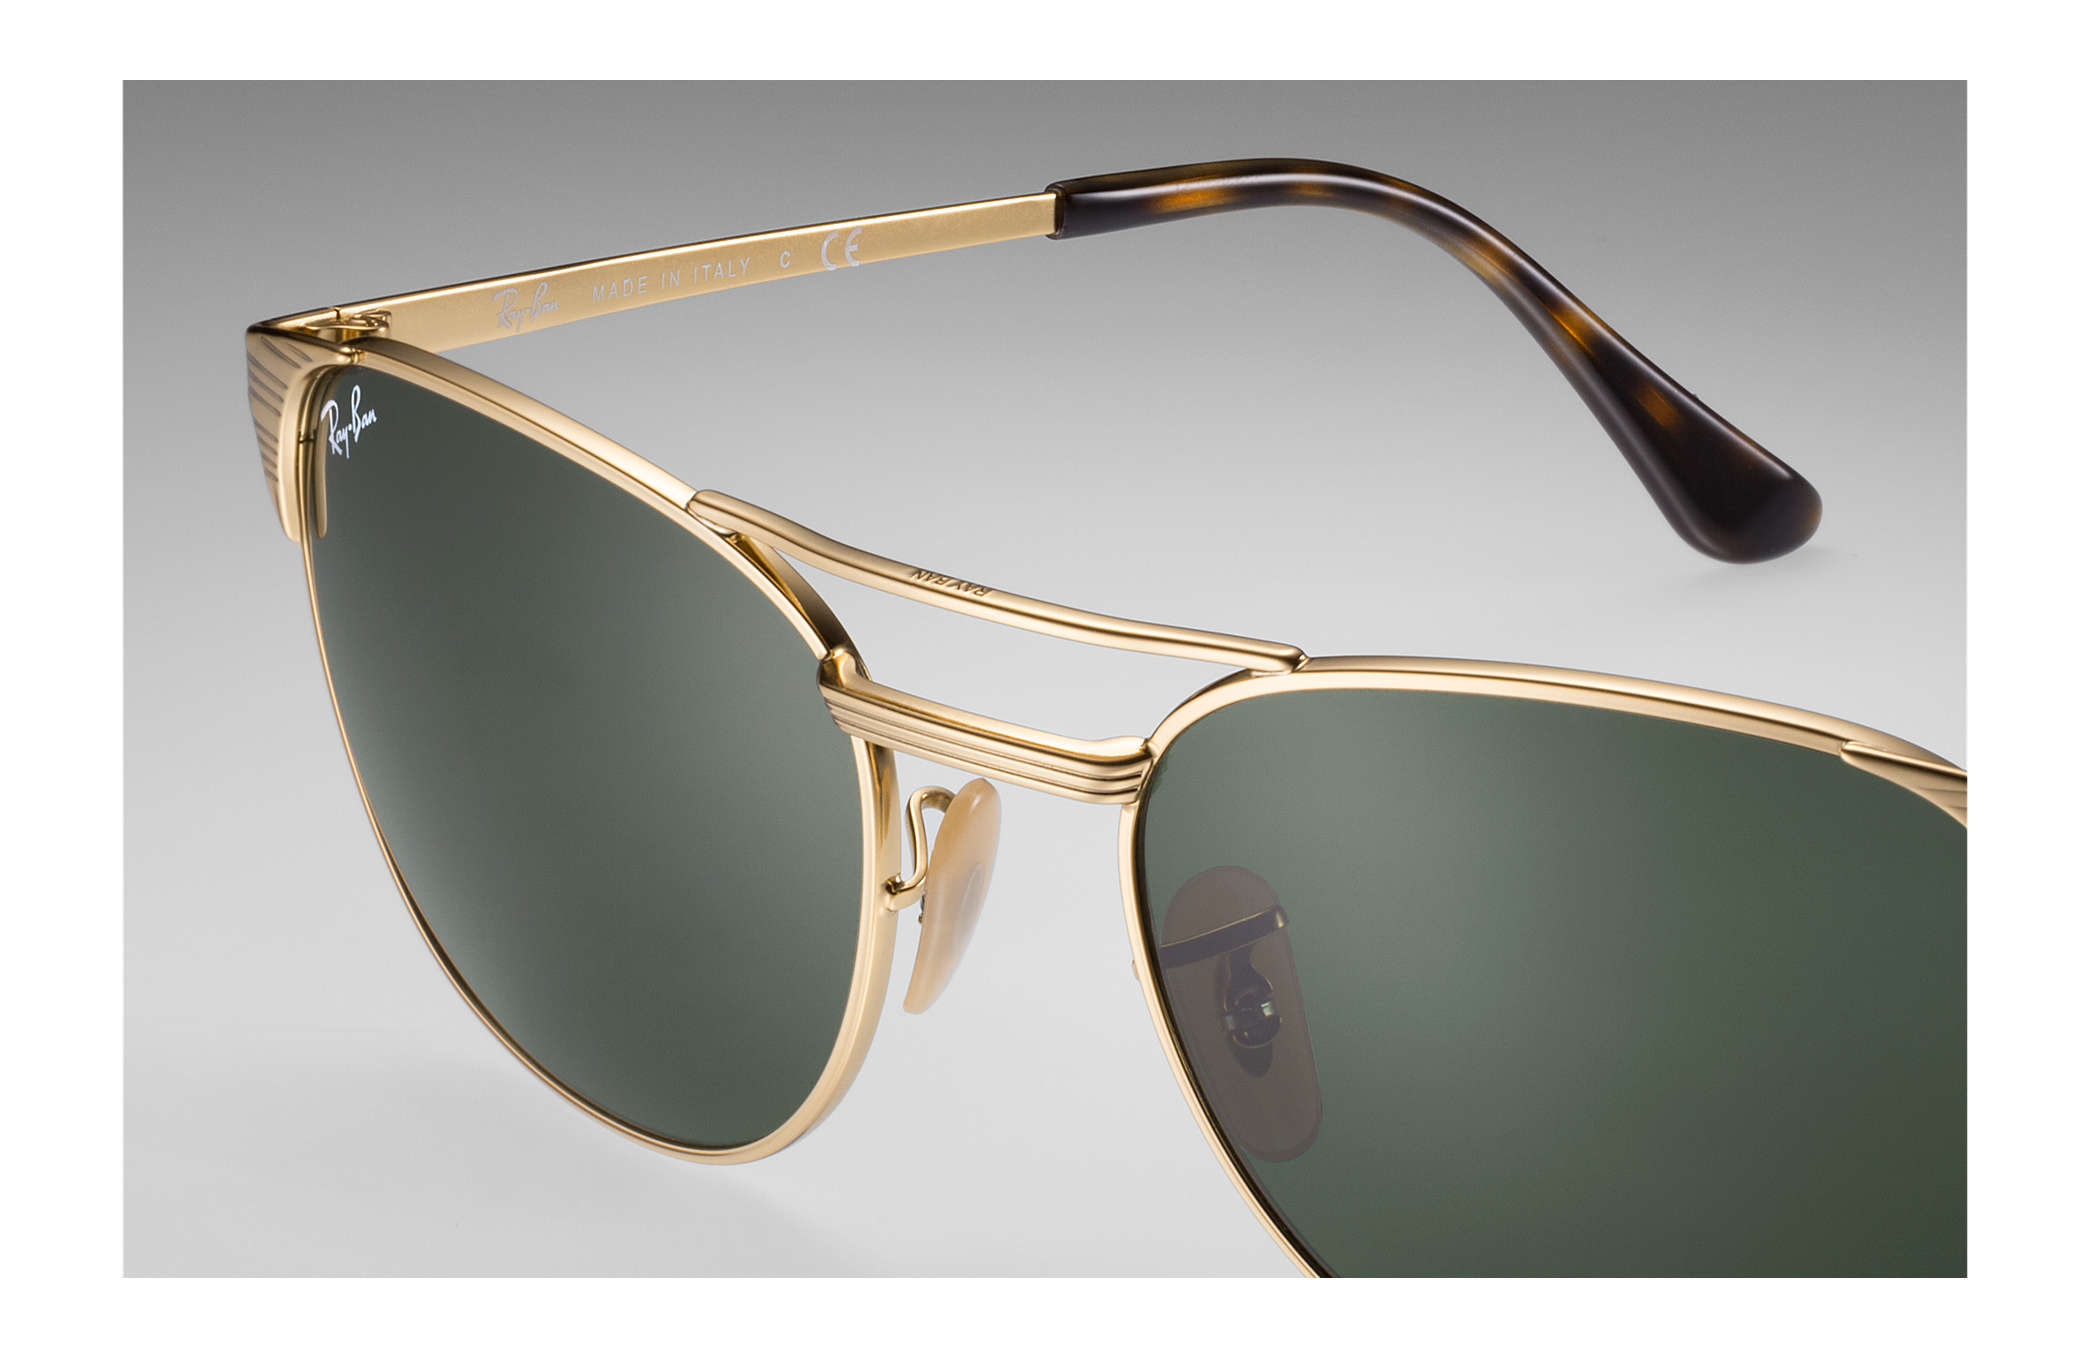 612103d6d49f Ray-Ban Signet RB3429M Gold - Metal - Green Lenses - 0RB3429M00155 ...